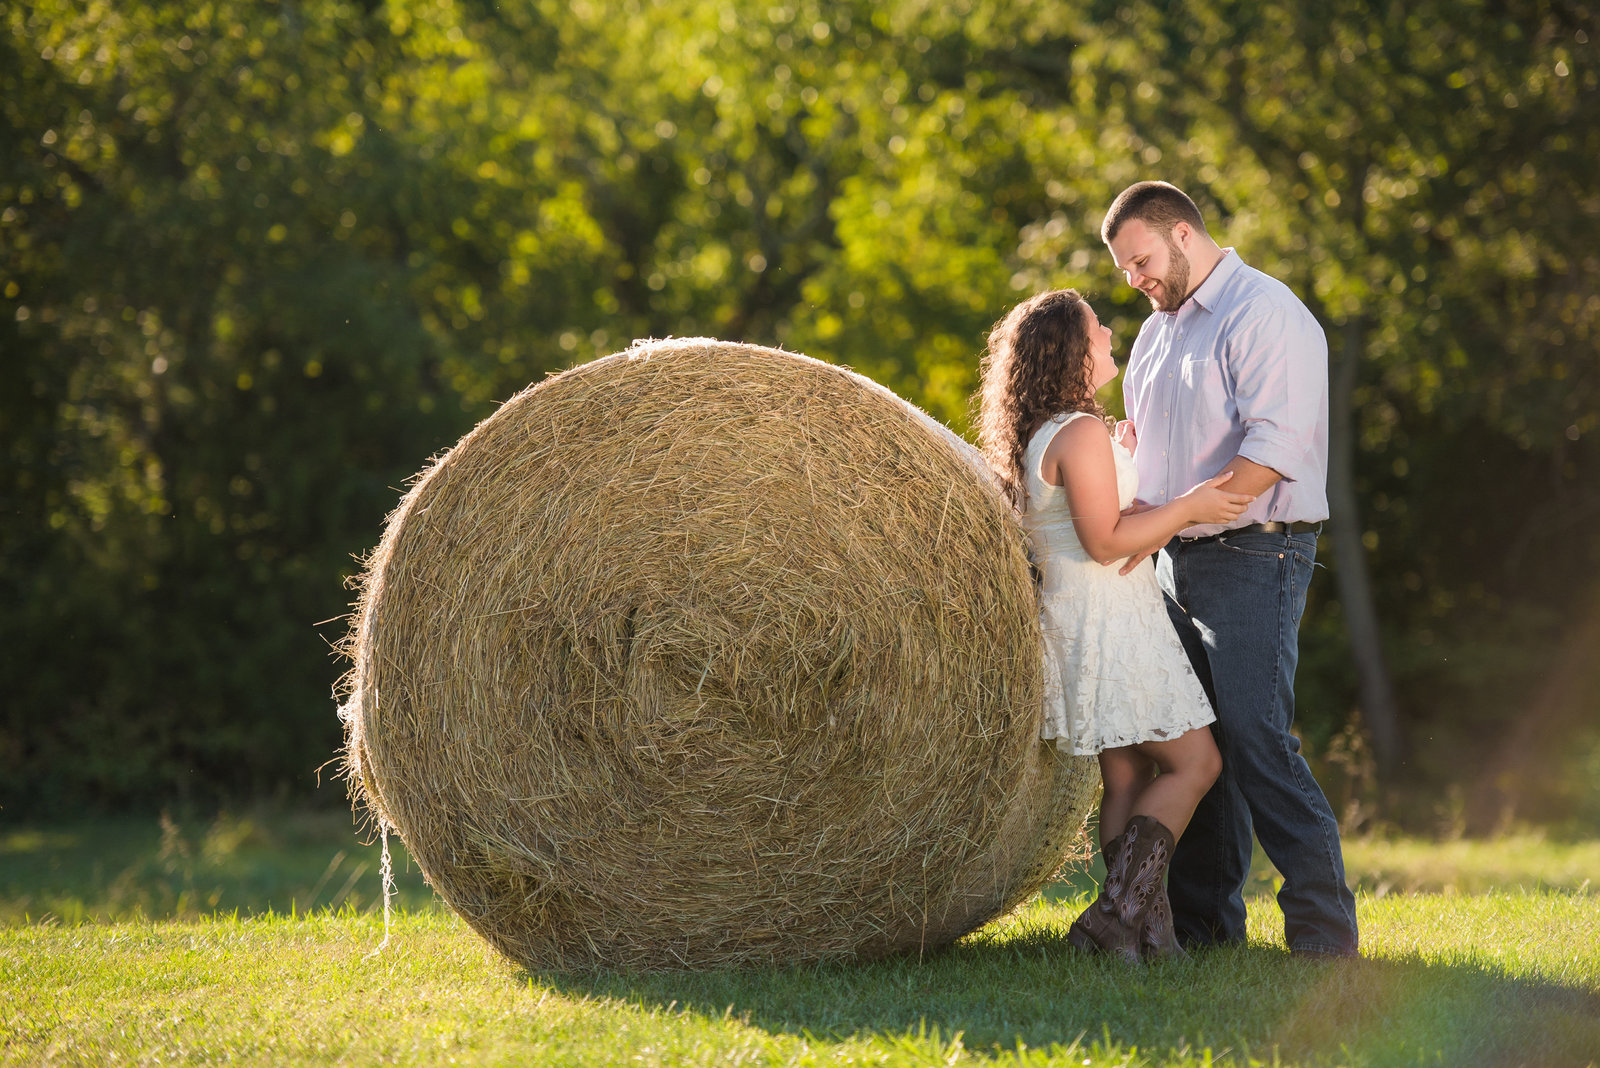 NJ_Rustic_Engagement_Photography006